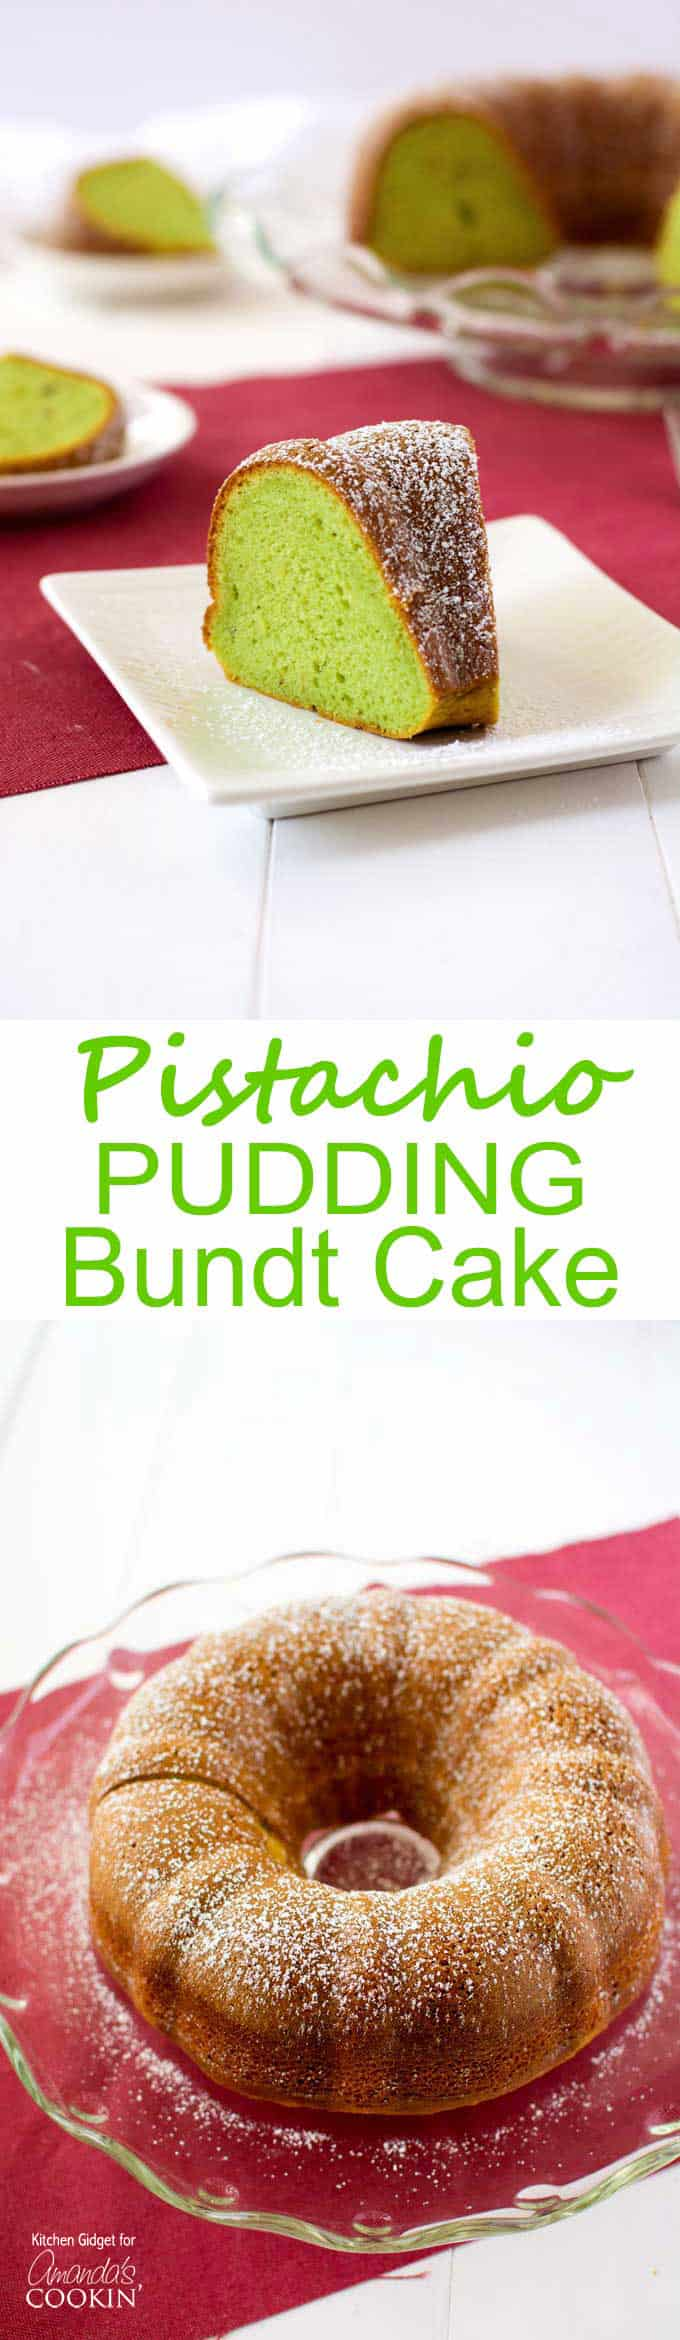 Add Pudding To Yellow Cake Mix Bundt Cake